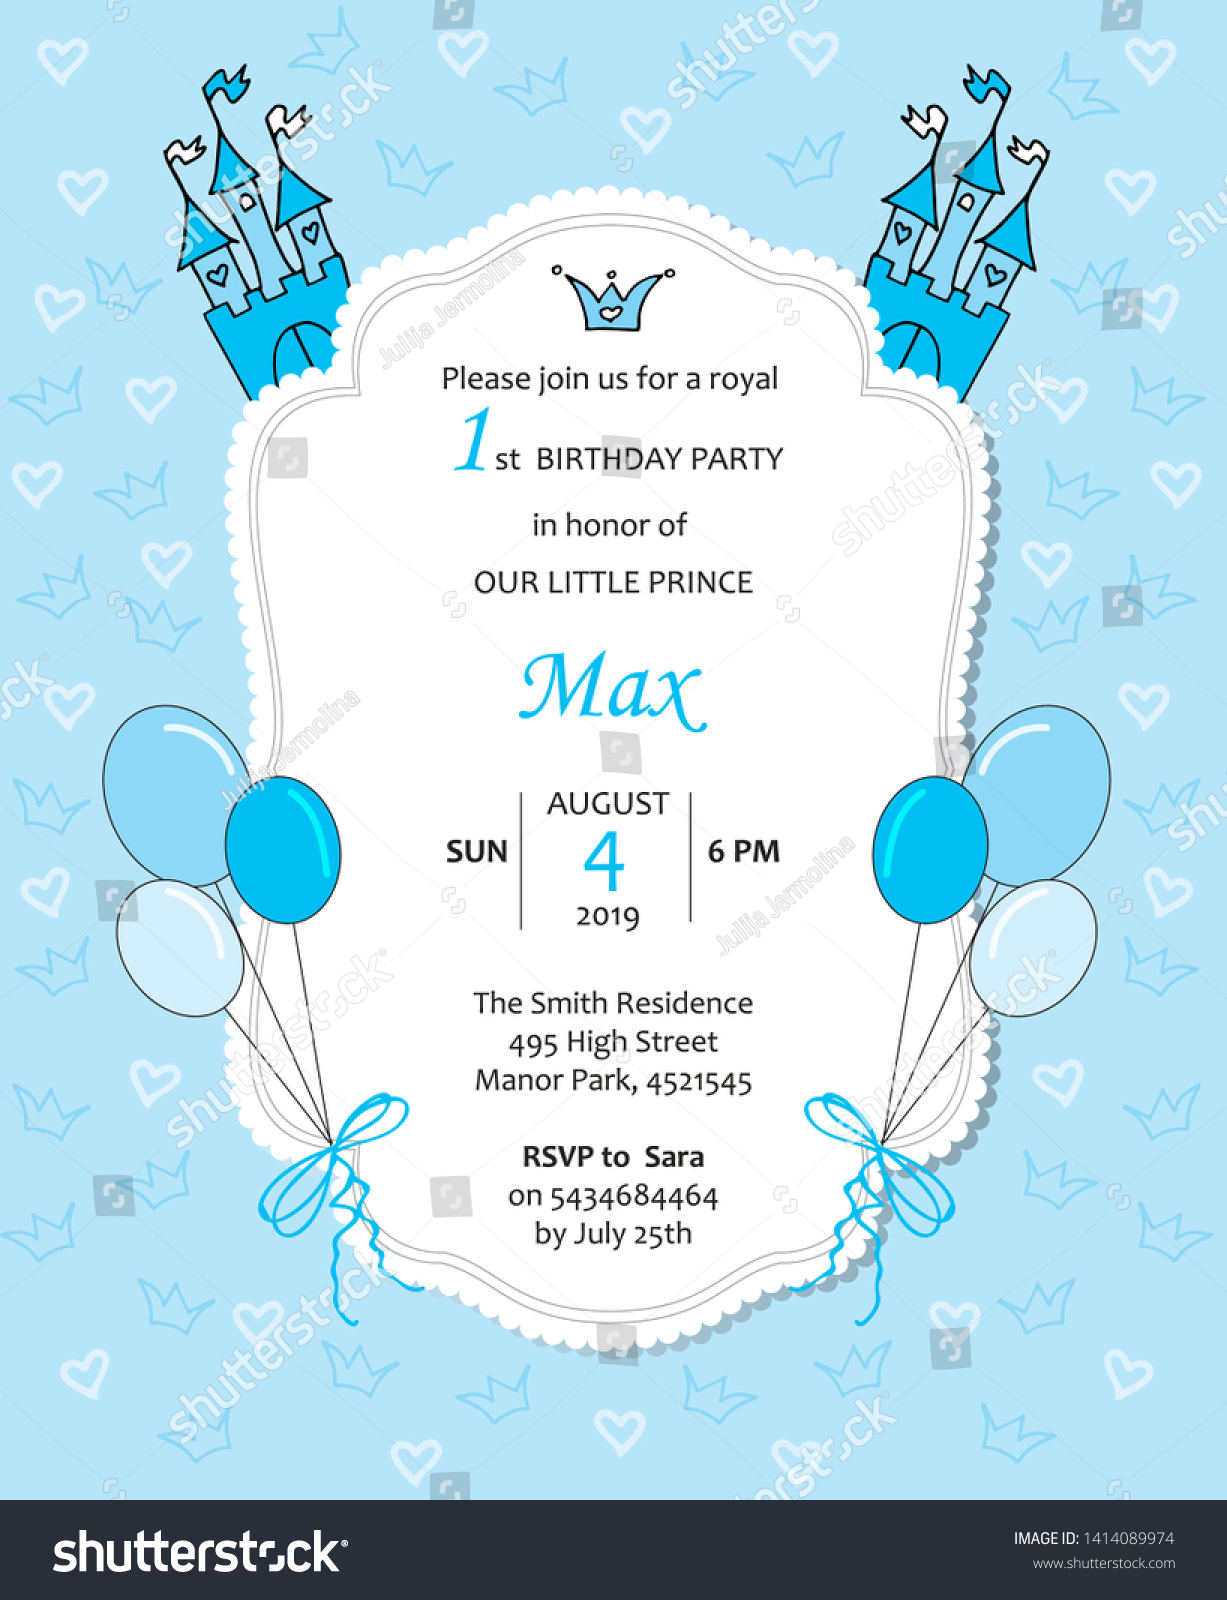 https www shutterstock com image vector baby boy royal birthday invitation balloons 1414089974